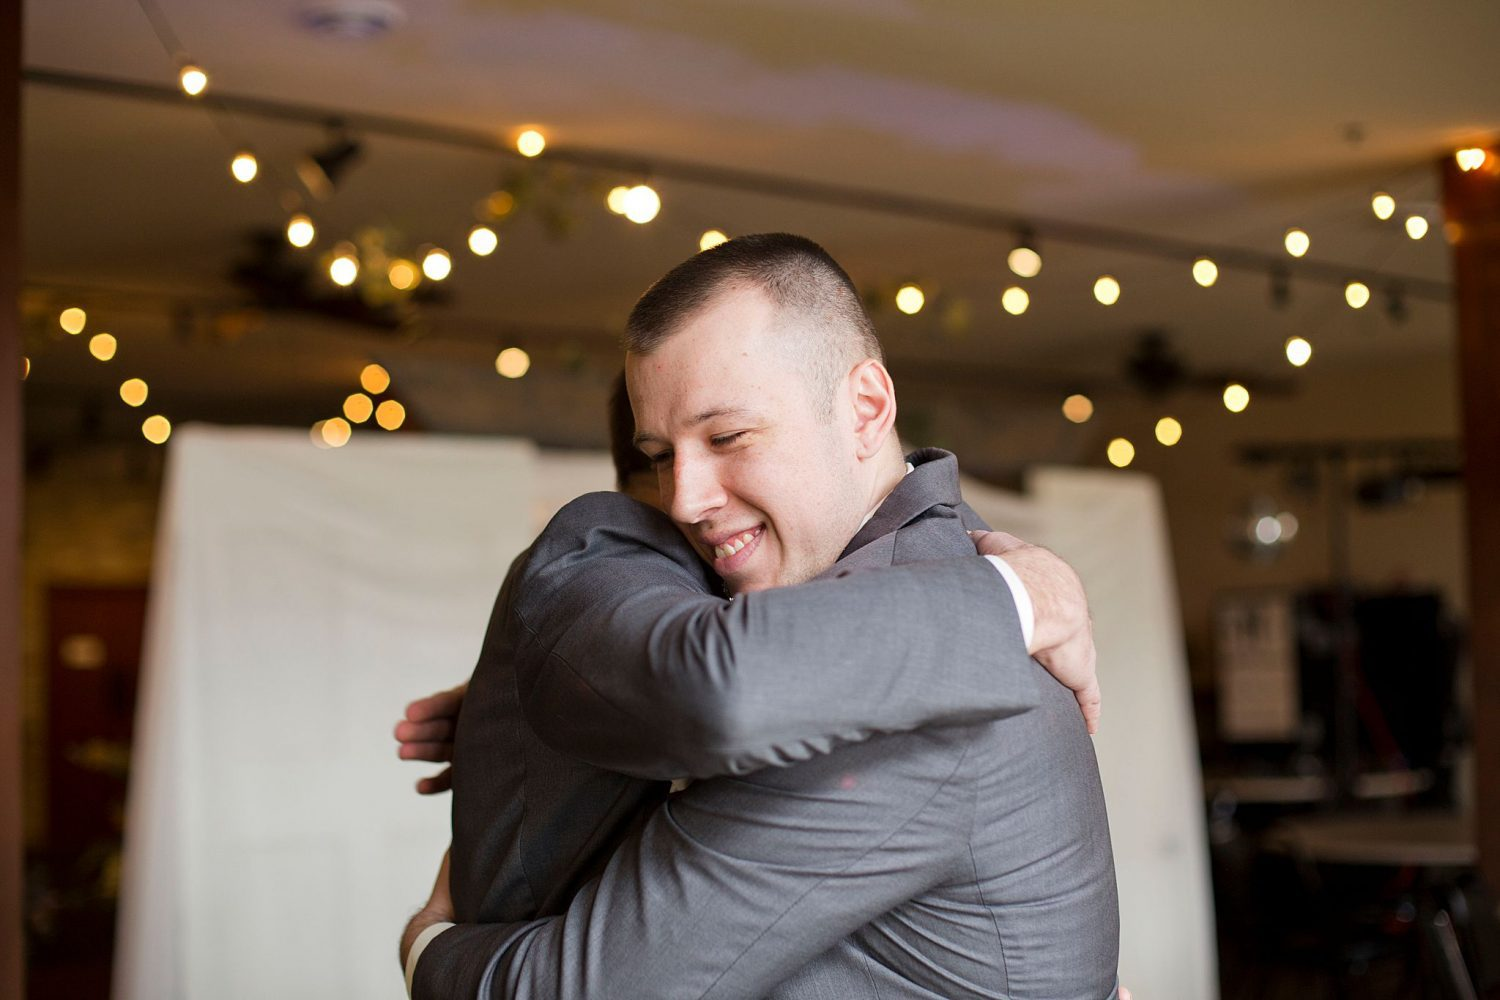 Father and groom give each other a hug.